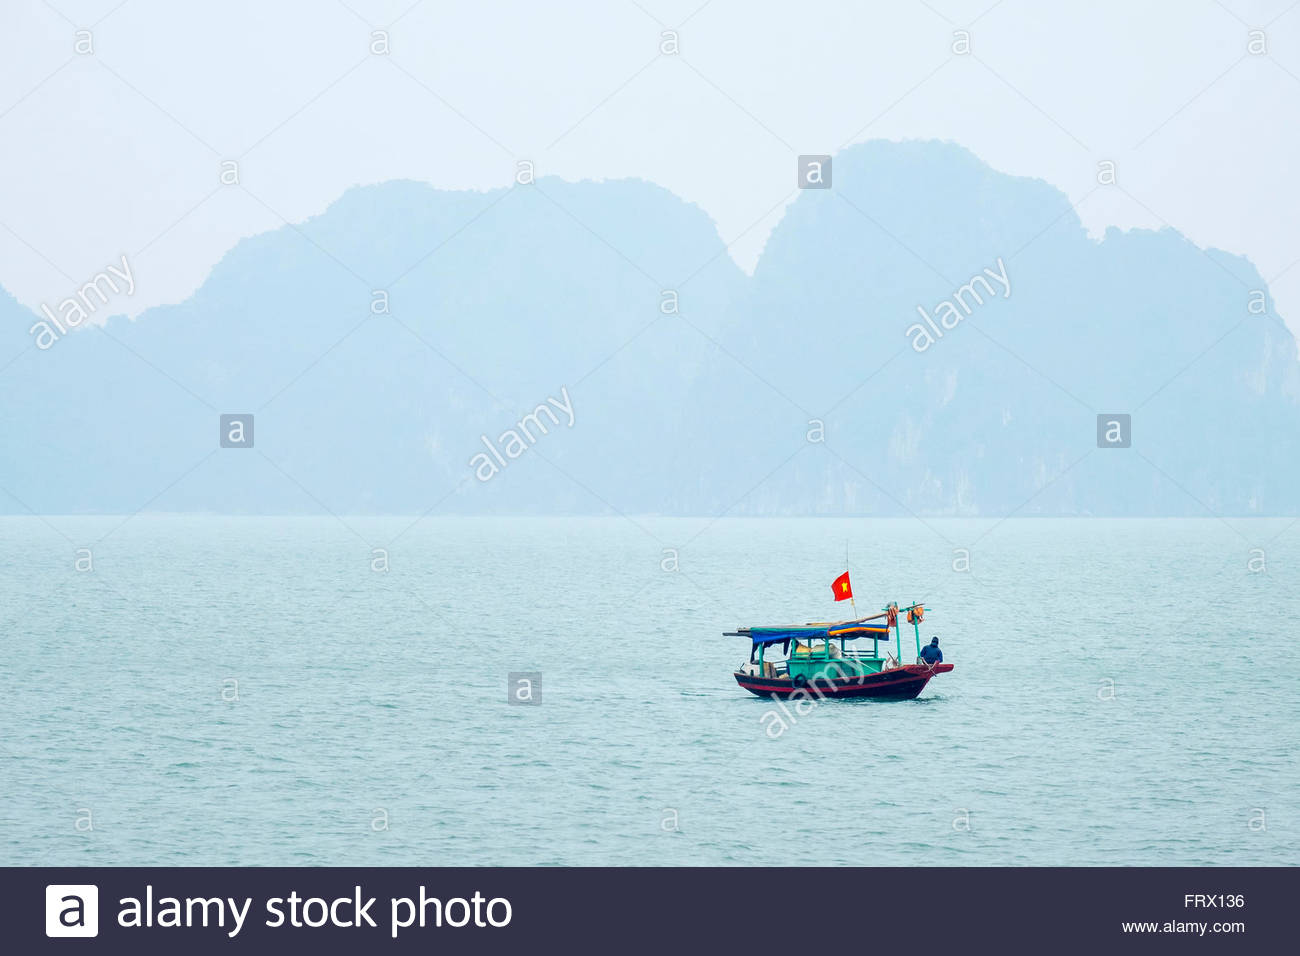 Small fishing boat in Ha Long bay on a foggy day, Quang Ninh Province, Vietnam - Stock Image